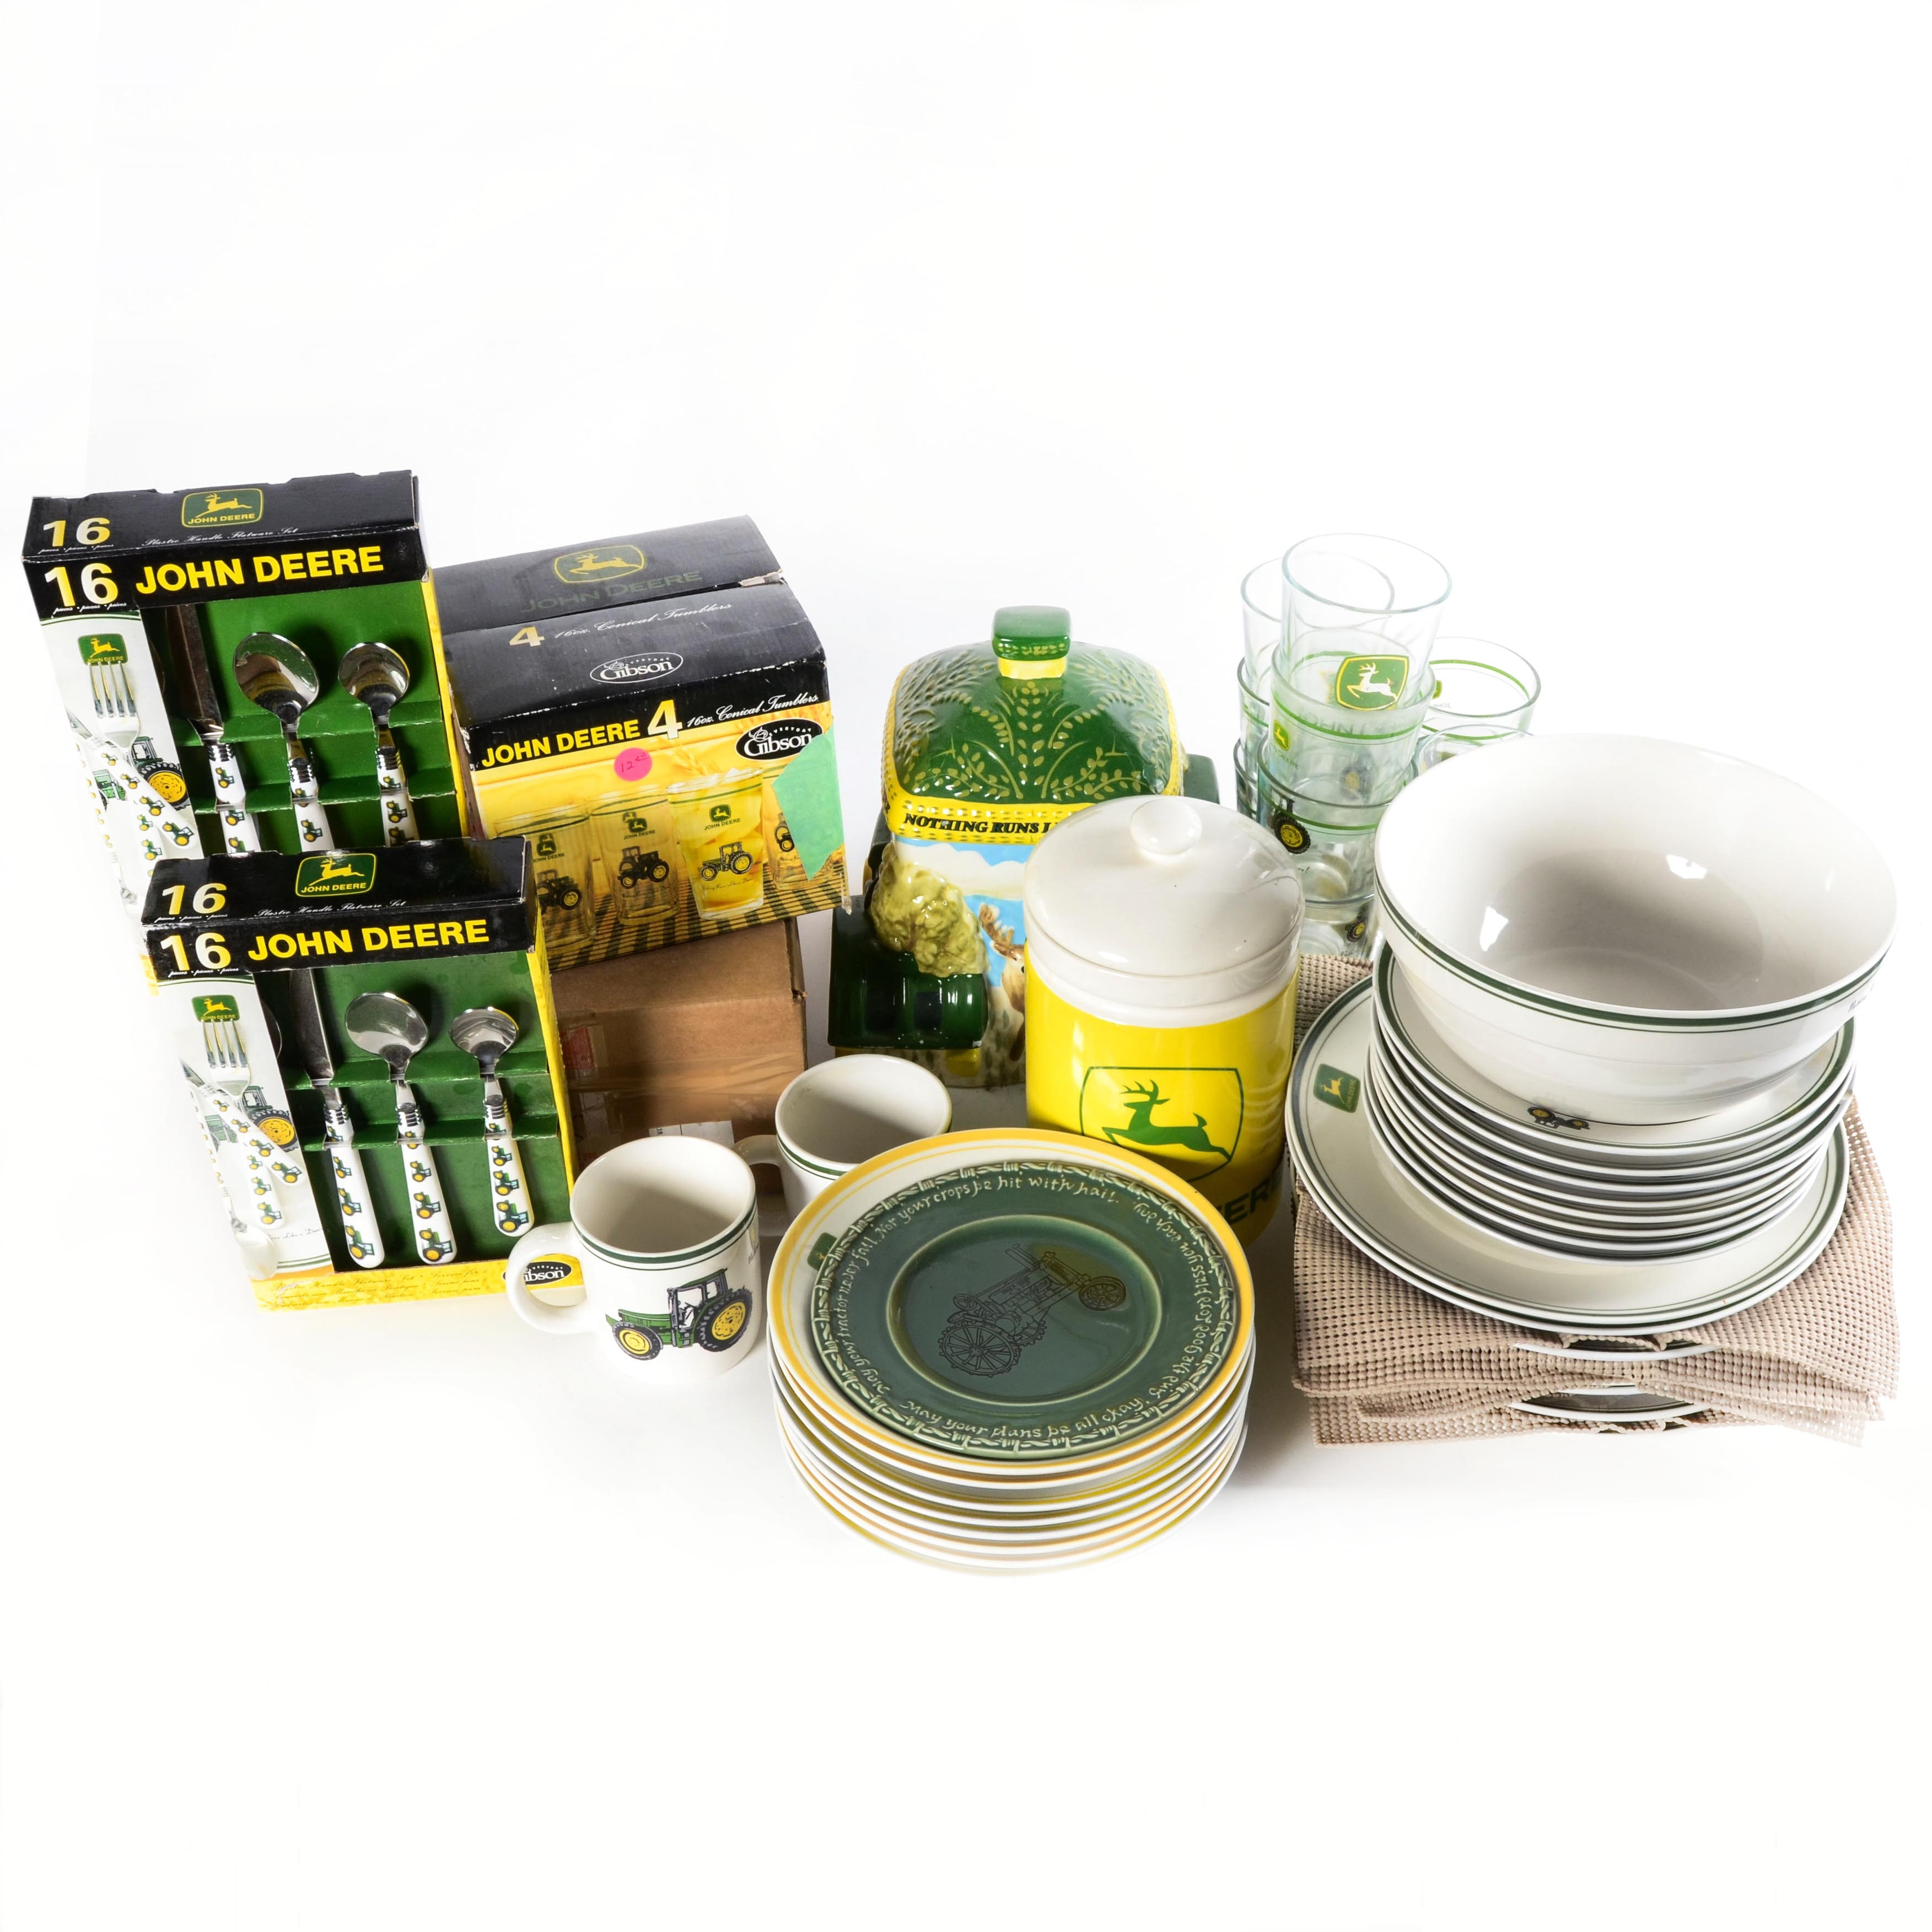 Collection of John Deere Dishes and Tableware